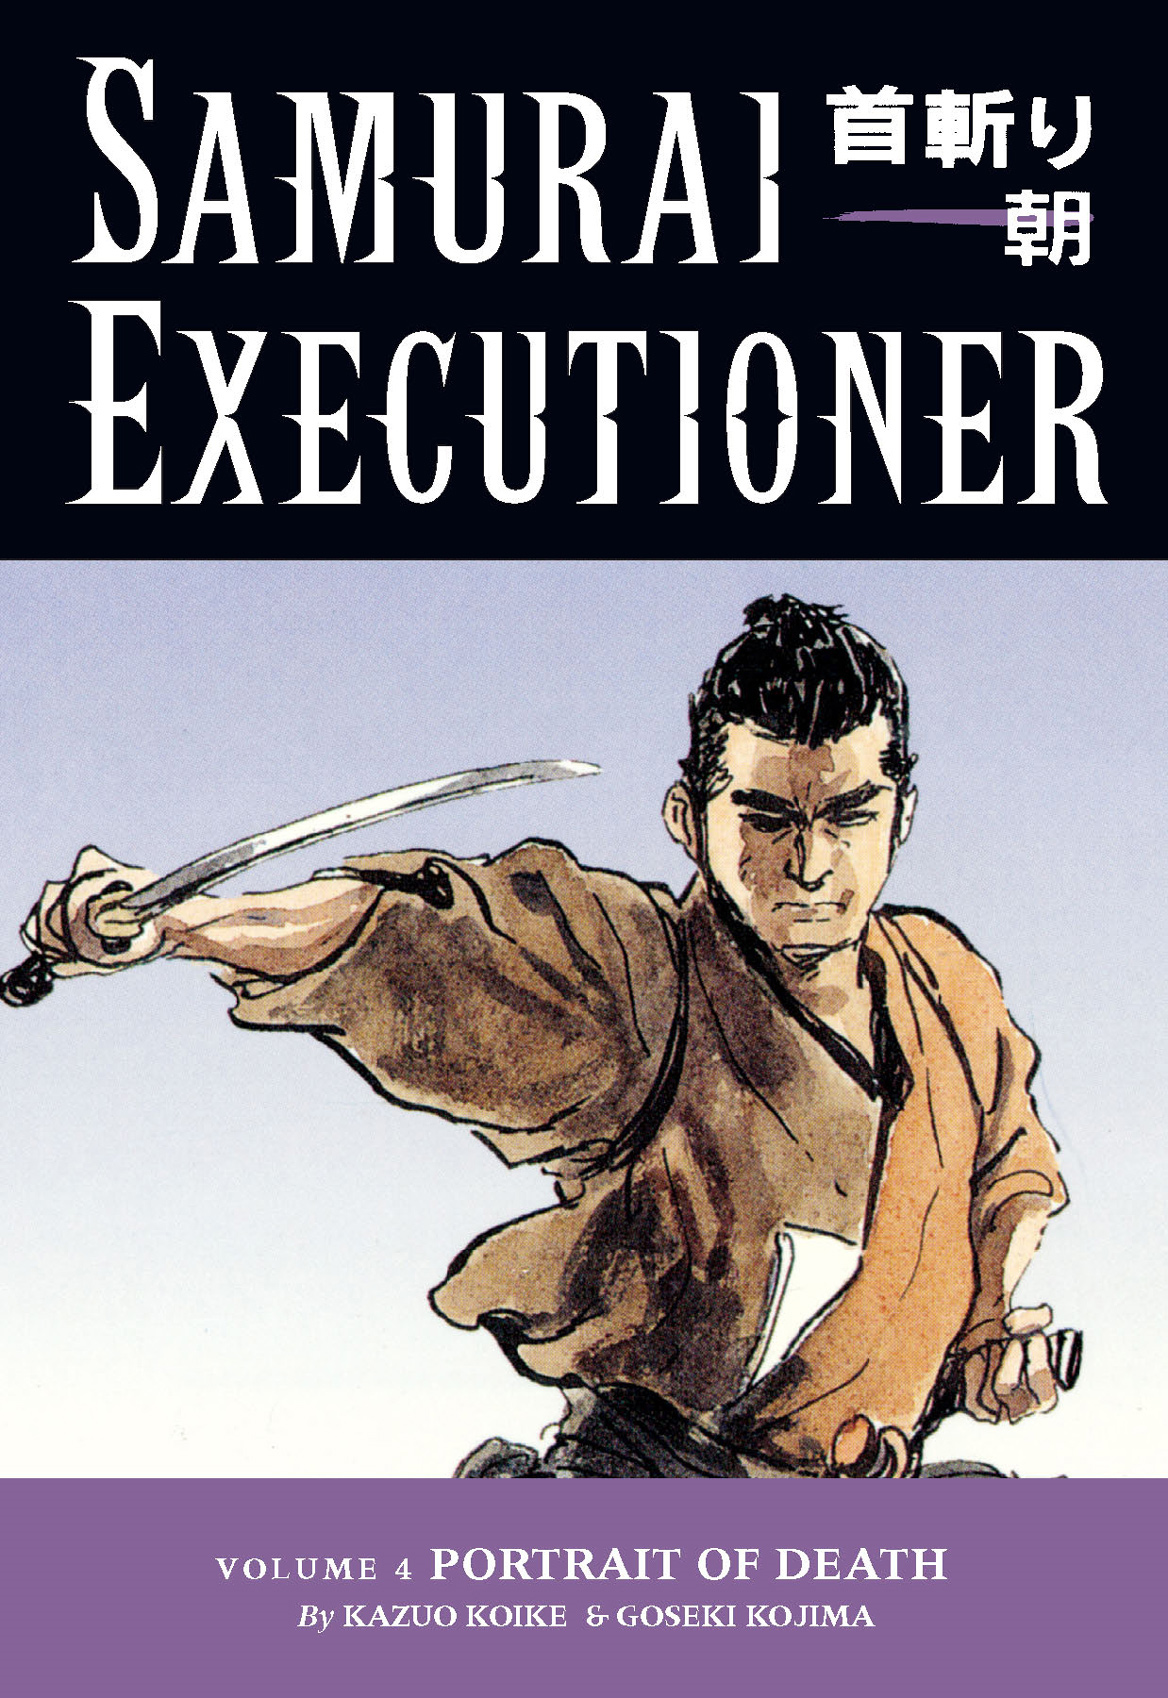 Samurai Executioner Volume 4